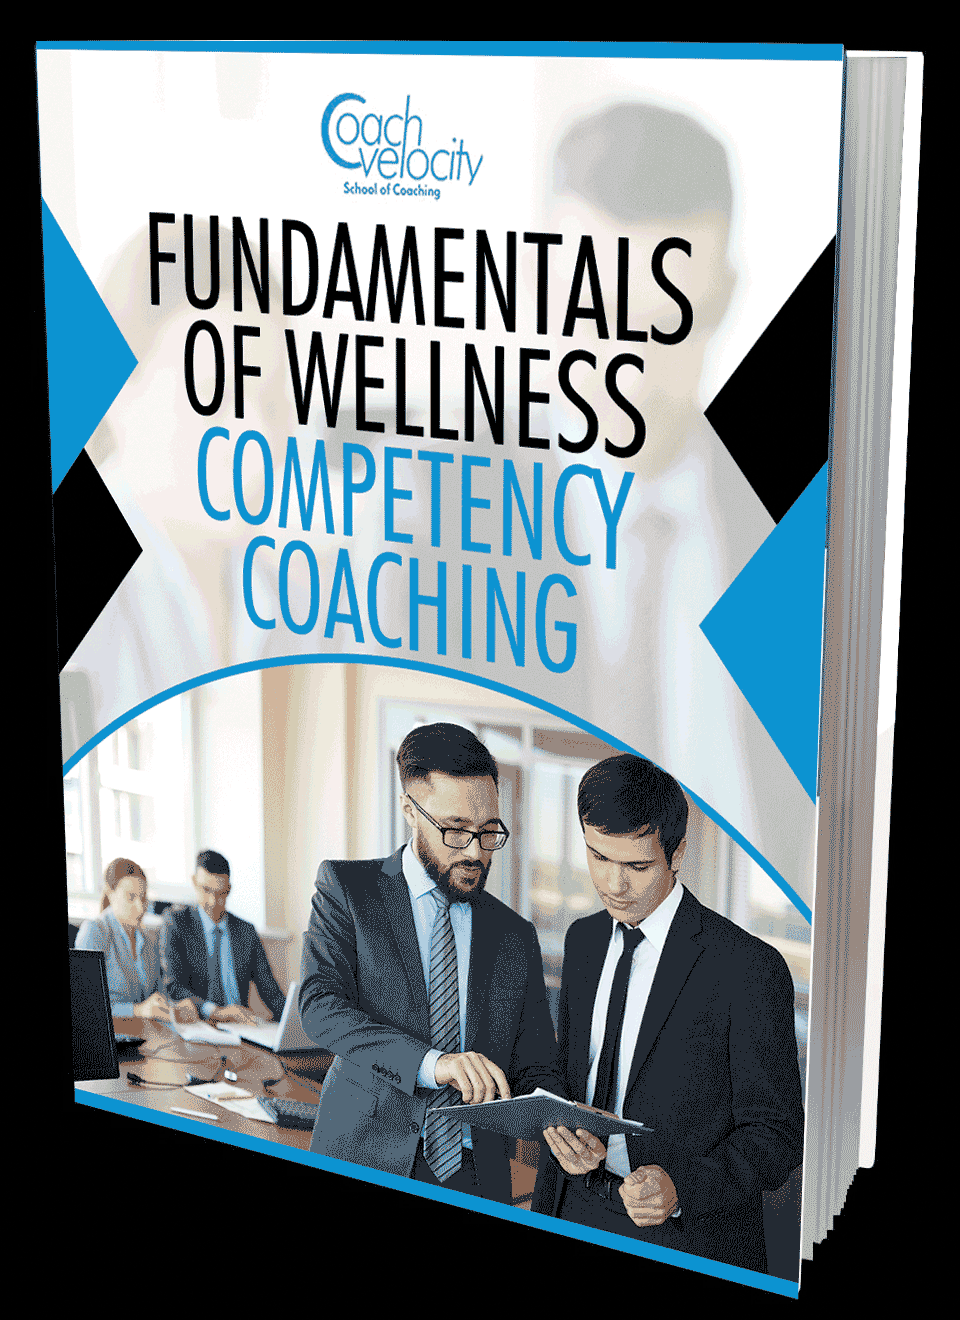 Fundamentals of Wellness Competency Coaching